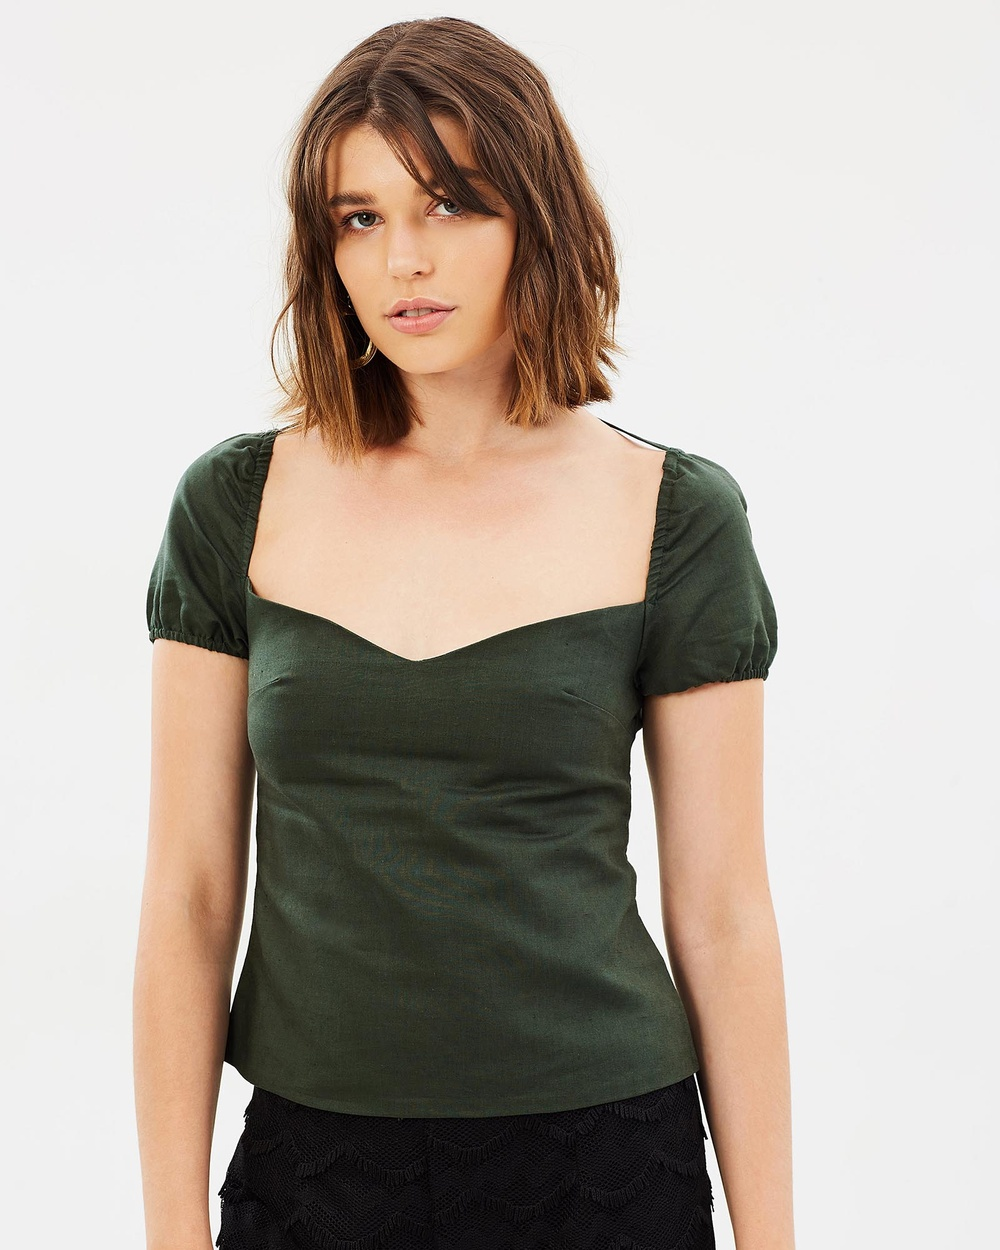 Livingstone Cooper Fitz Top Cropped tops Hunter Green Fitz Top